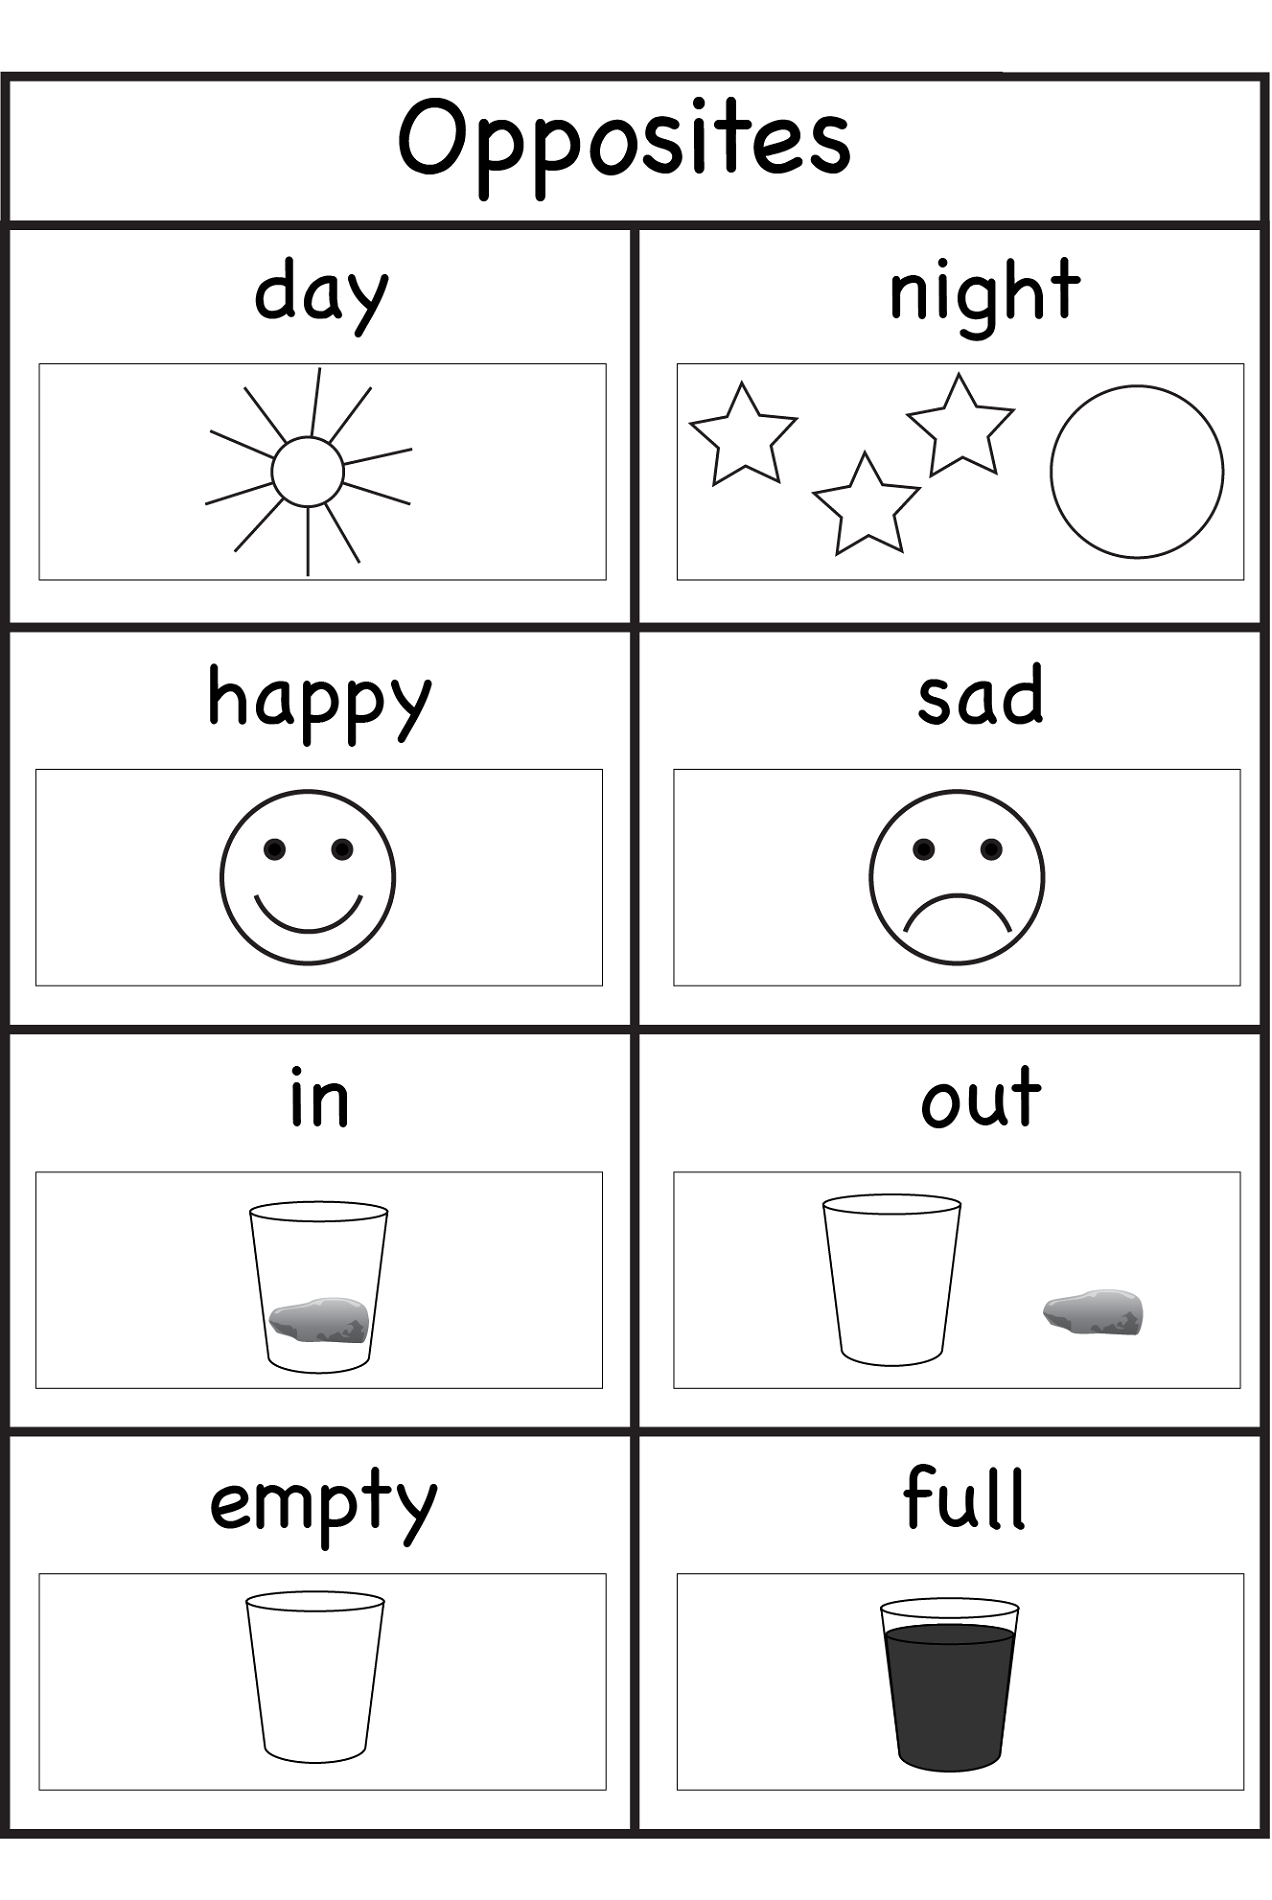 Activity Sheets For 3 Year Olds – With Free Preschool Worksheets Age | Free Printable Worksheets For 3 Year Olds